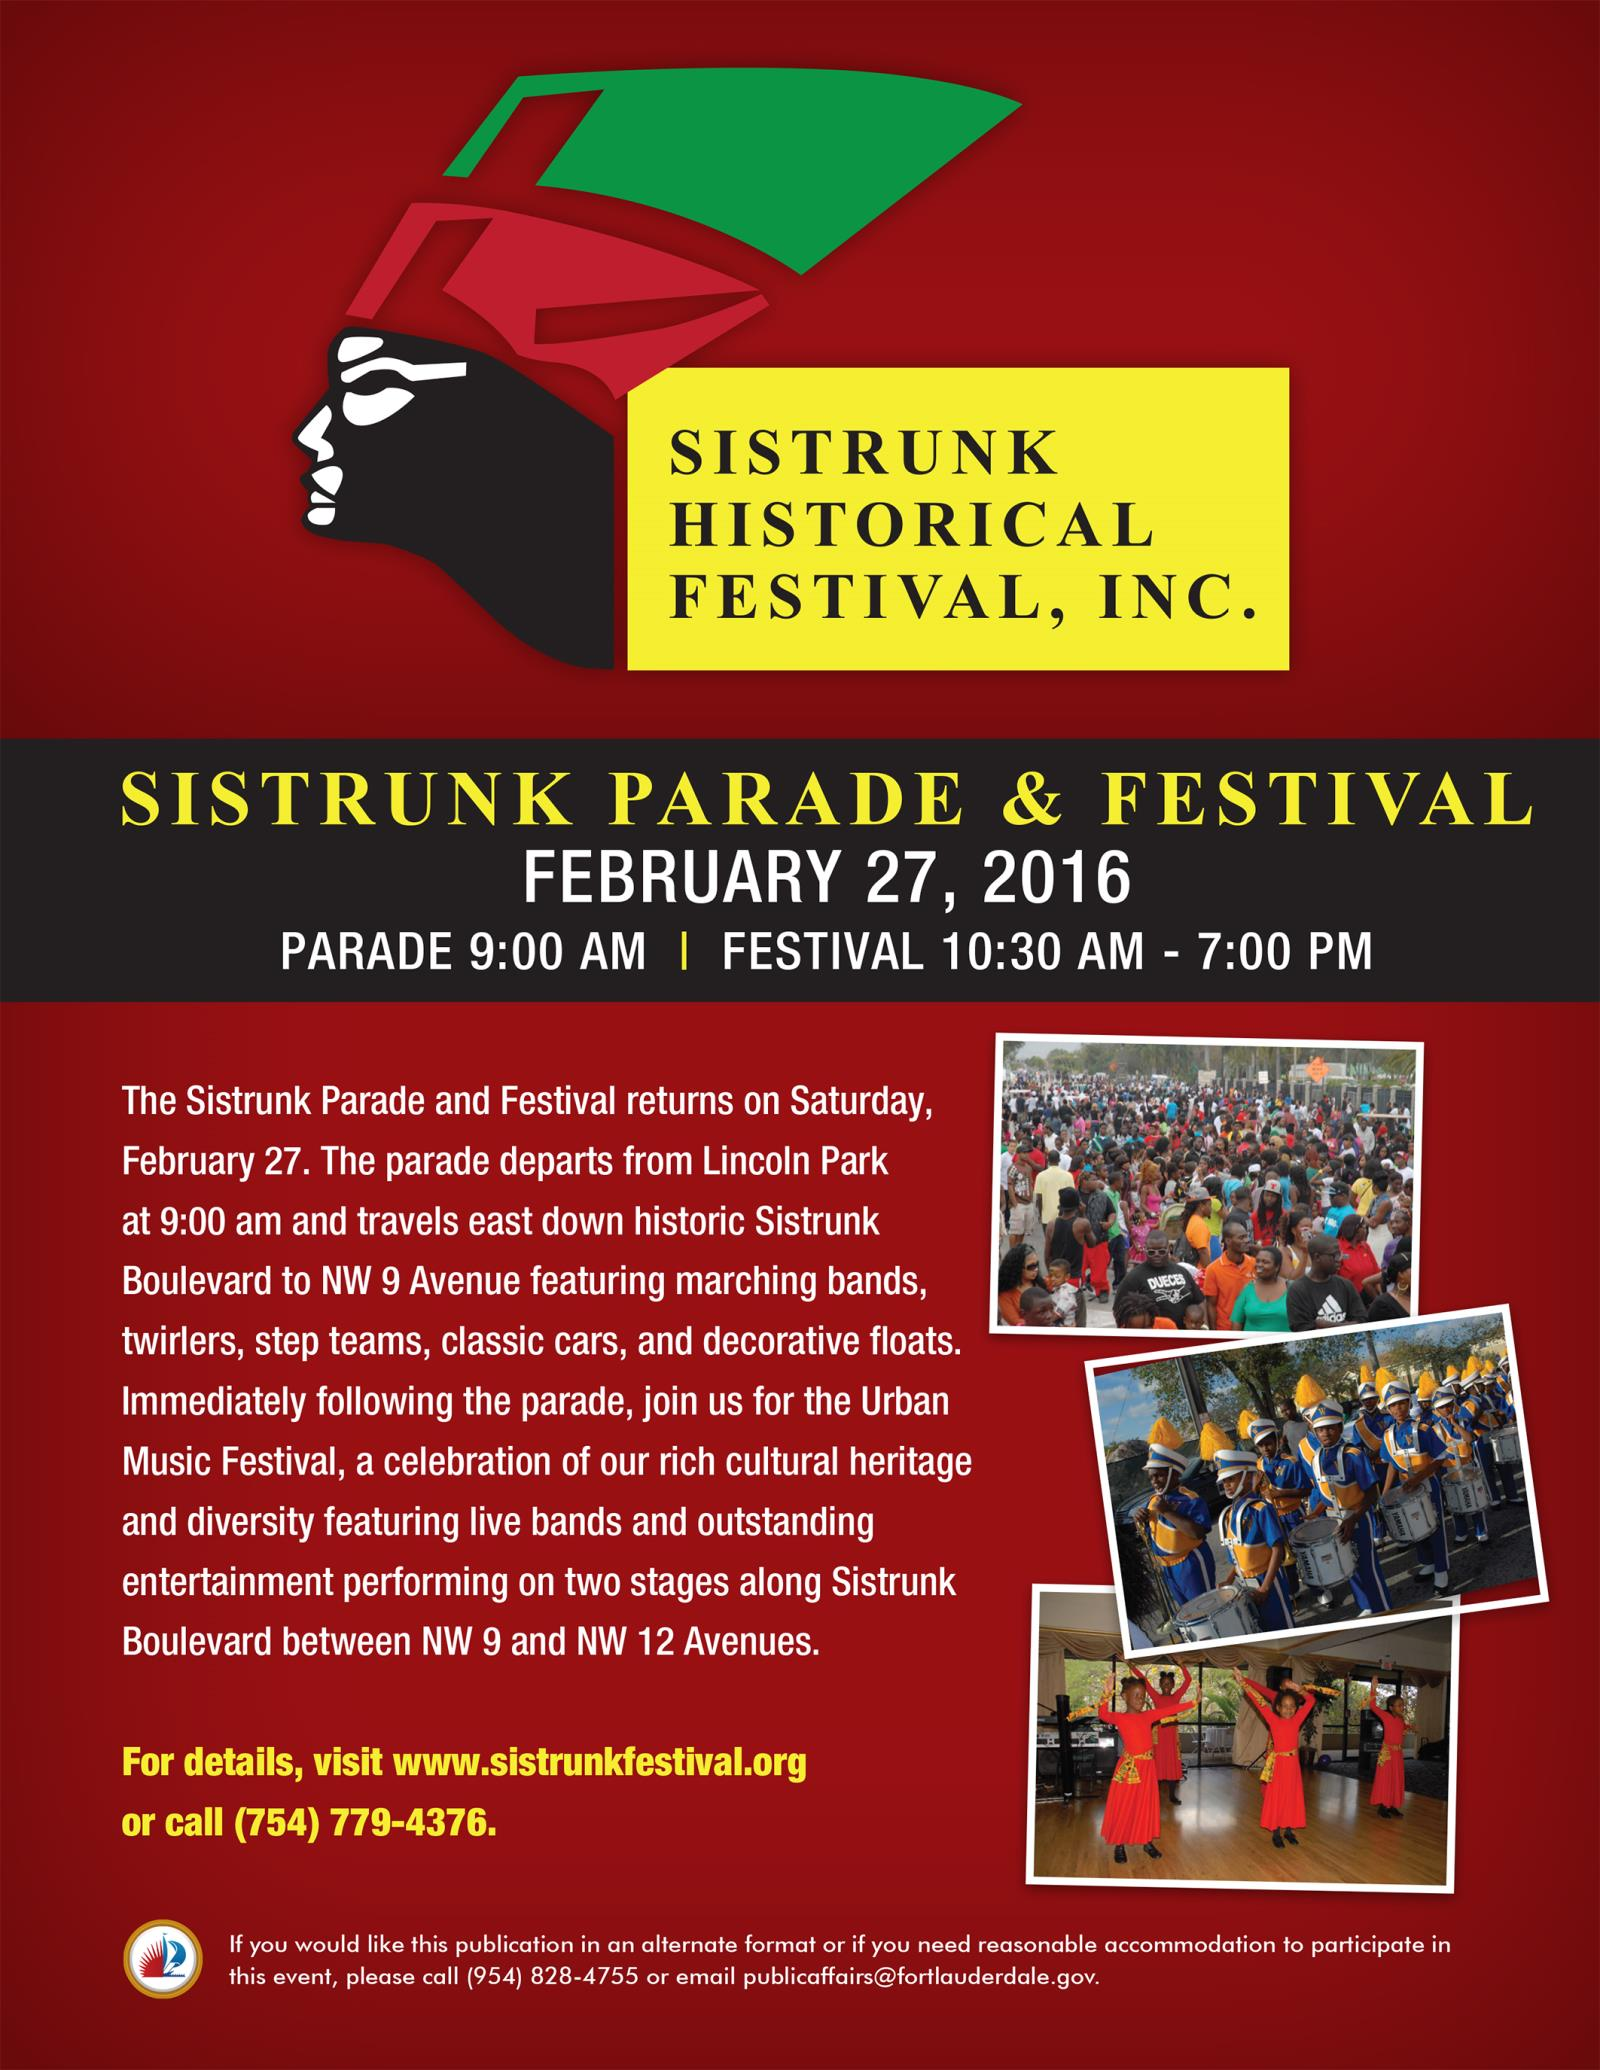 2986 PR Sistrunk Historic Festival 2016 Flyer_Draft2_red